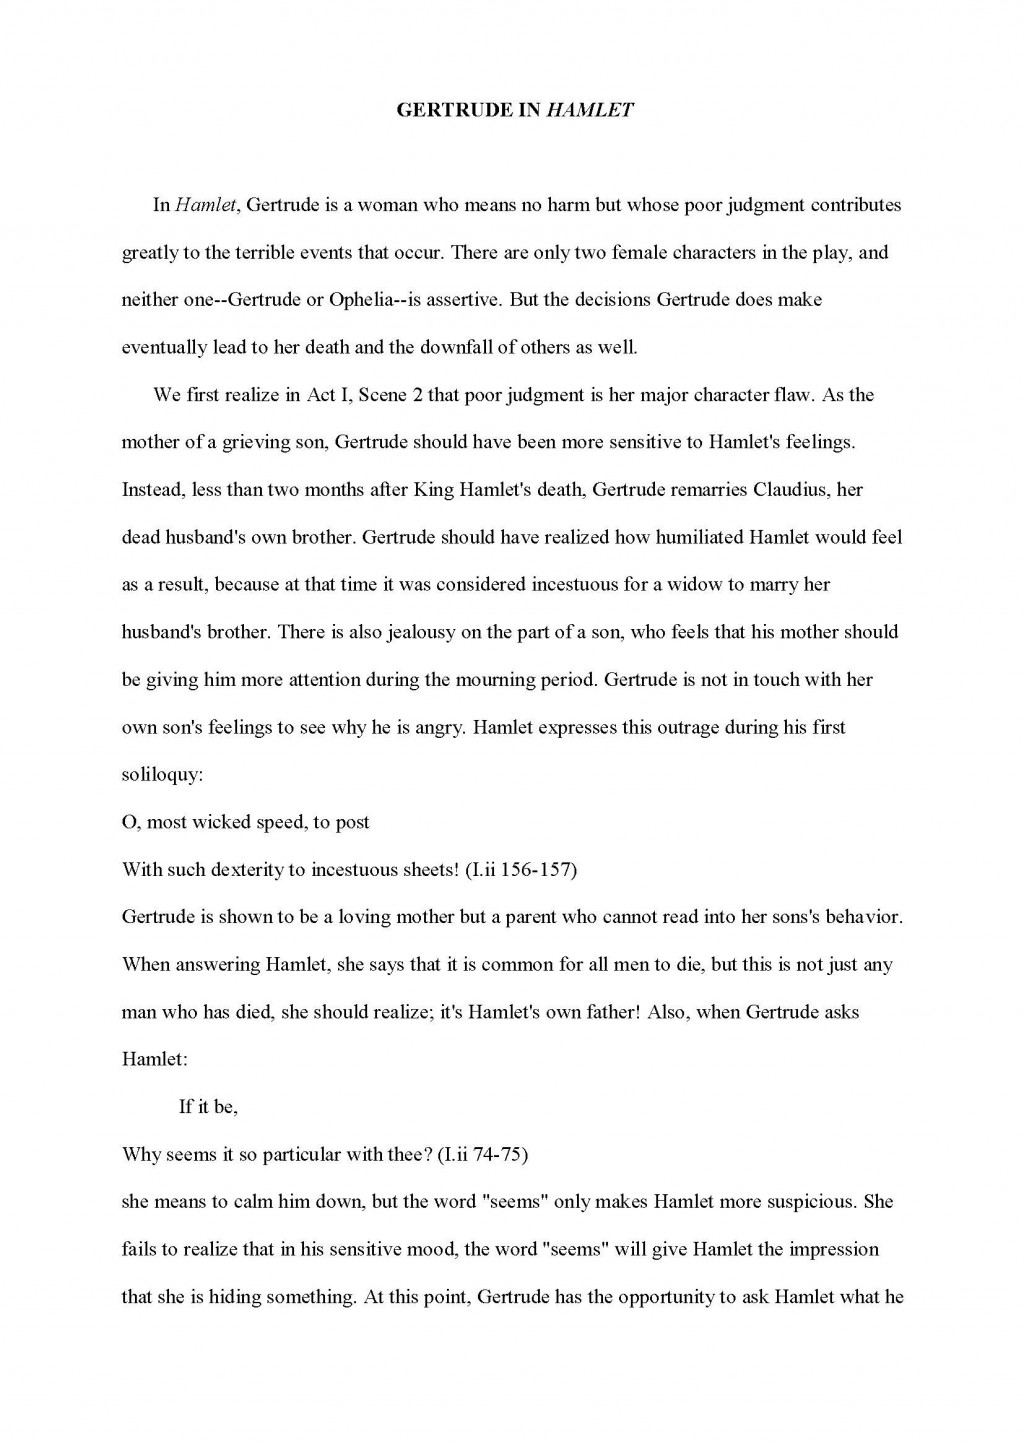 004 Analysis Essay Sample Example How To Write Formidable A Literary Good English Literature Introduction Conclusion Grade 4 Large